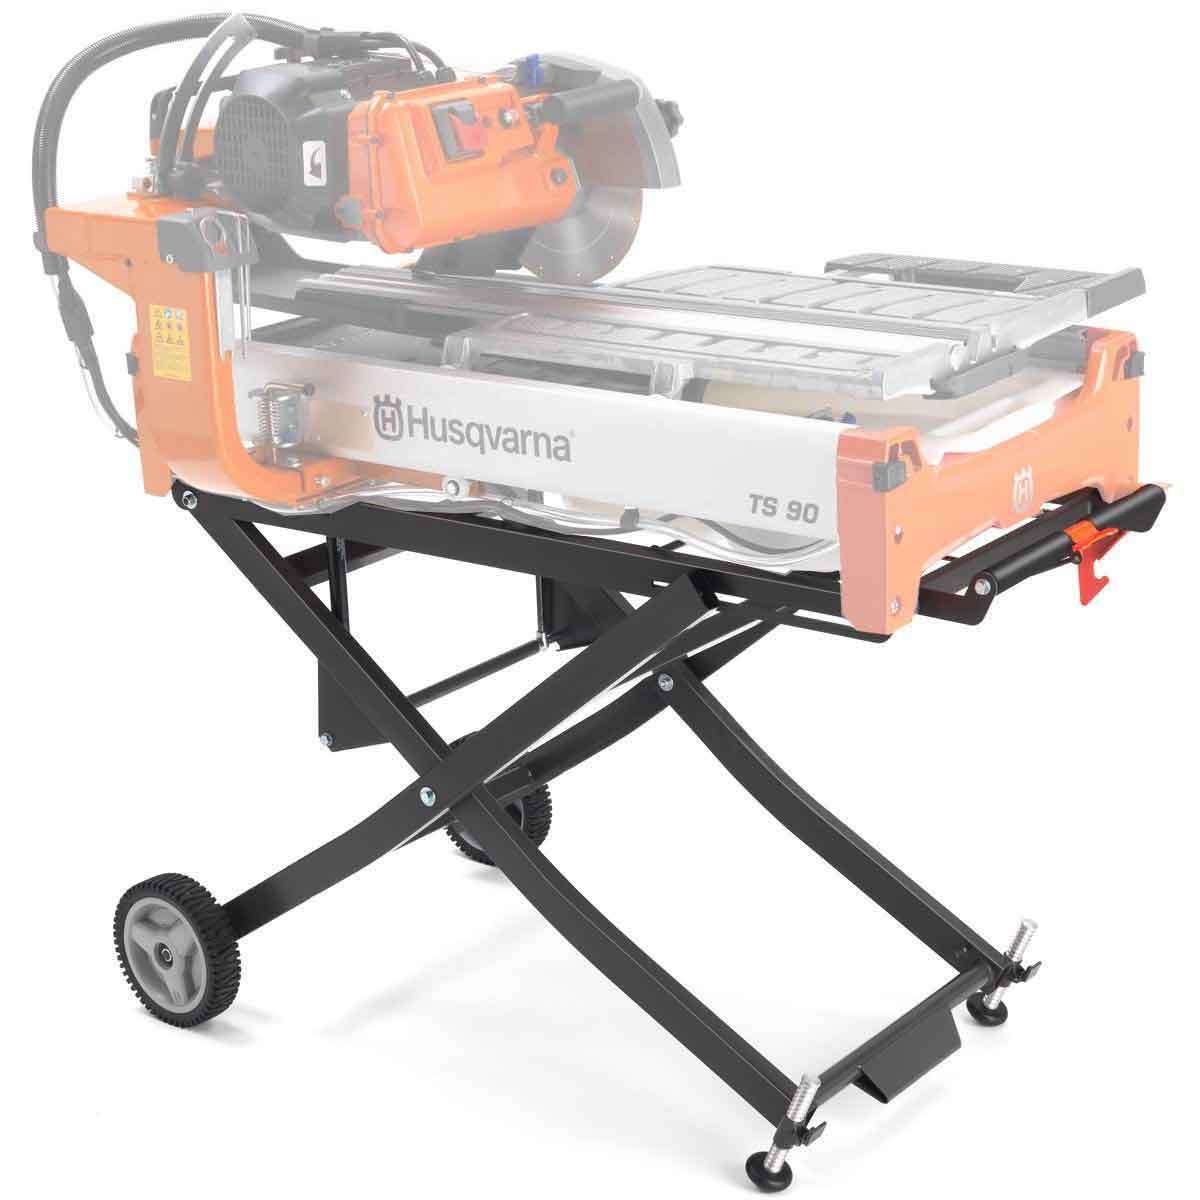 Husqvarna folding scissor stand for tile saws